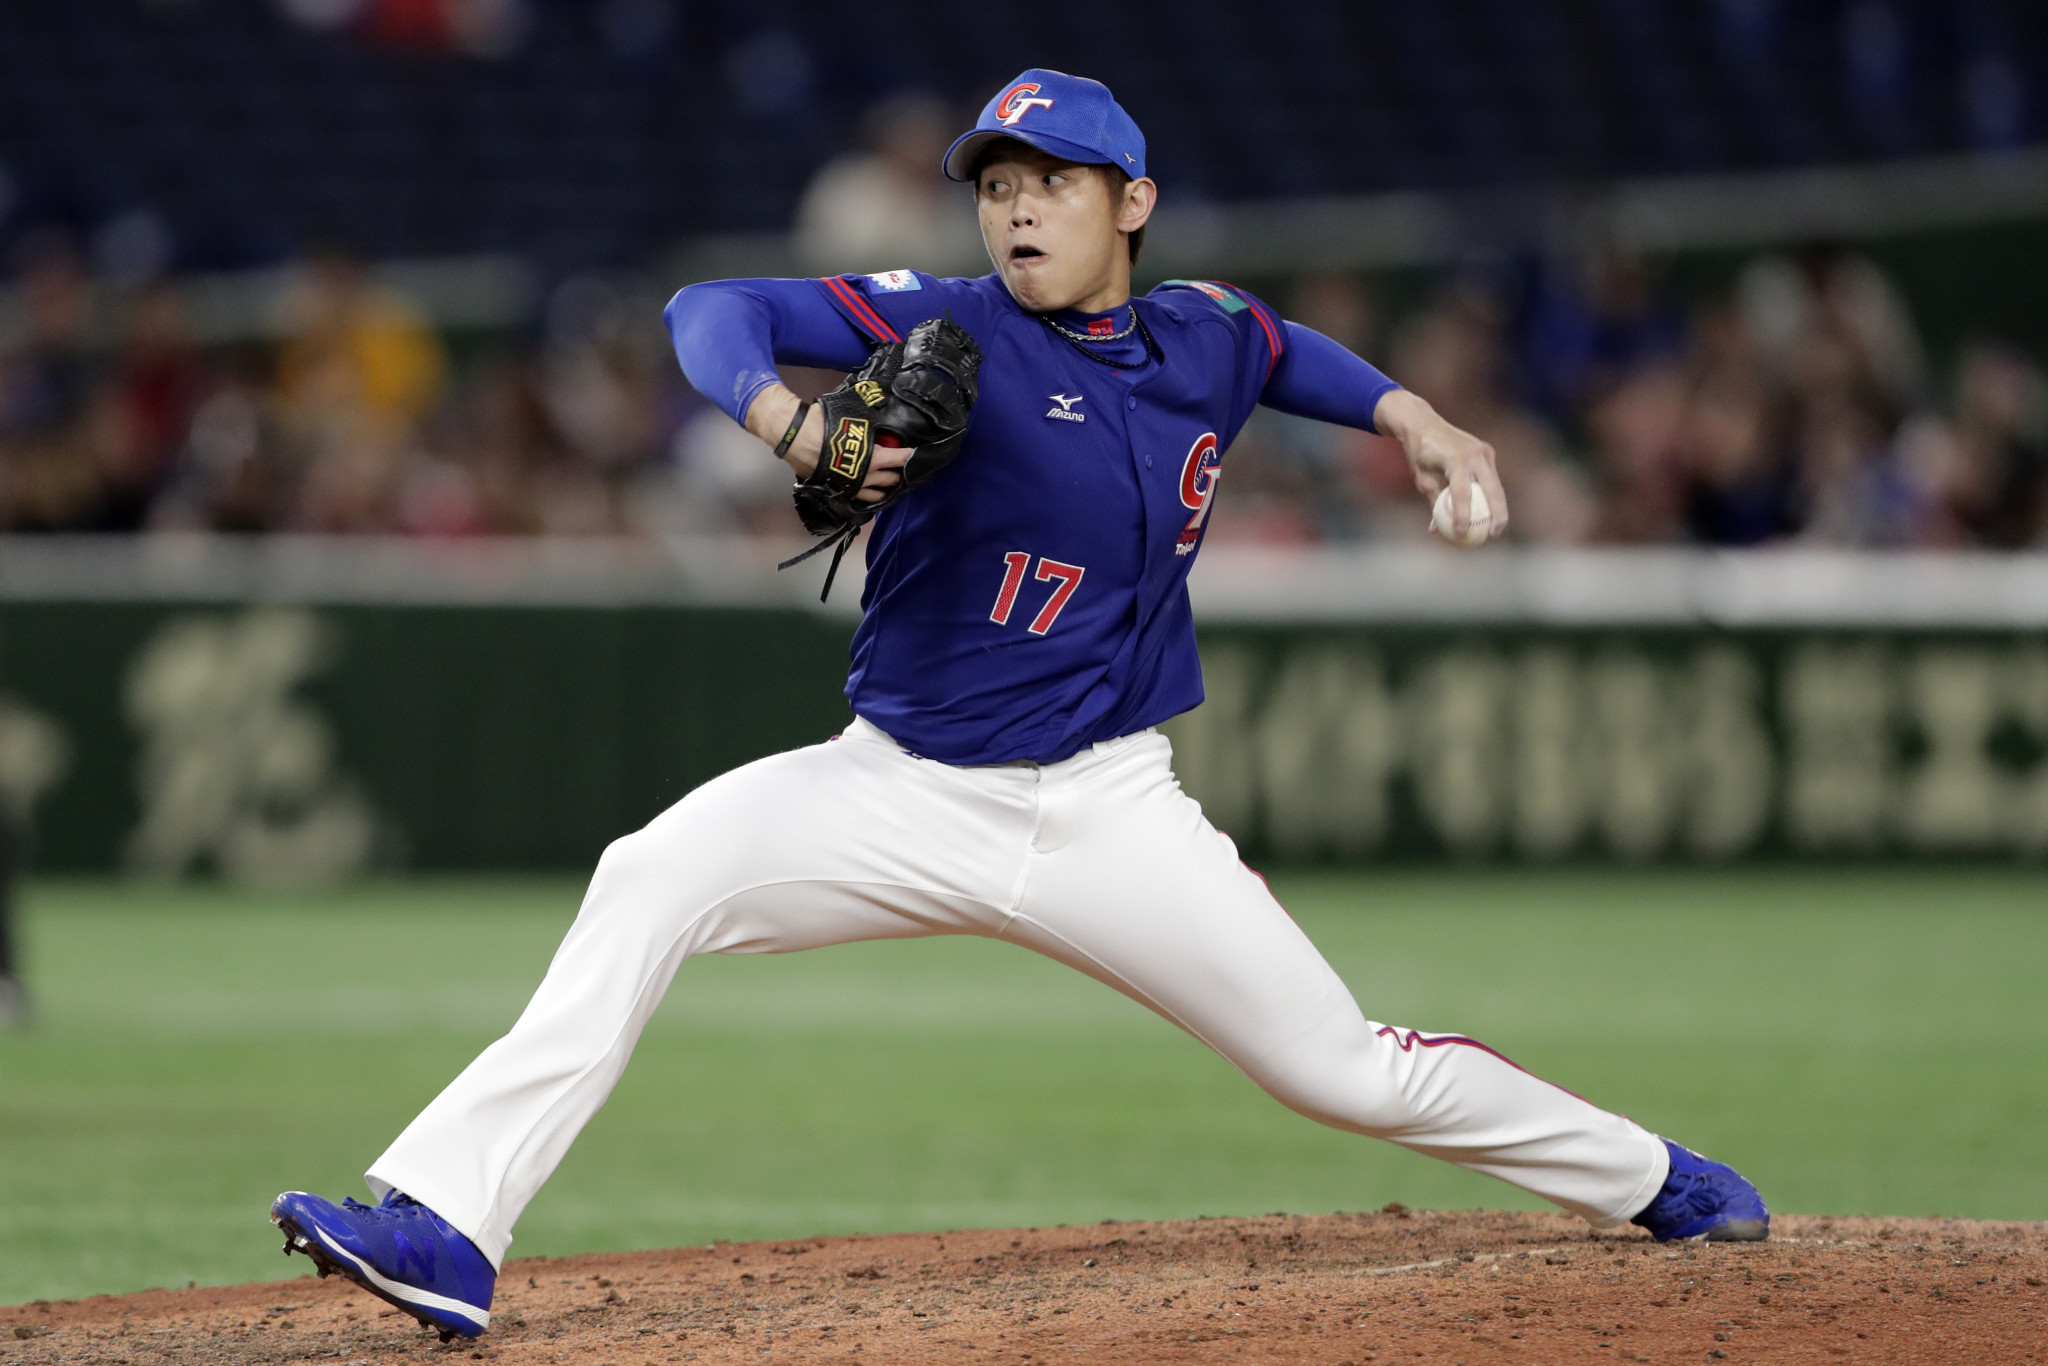 Chinese Taipei will be the host of the last-chance world qualifier, offering the final spot in the Tokyo 2020 baseball tournament ©Getty Images